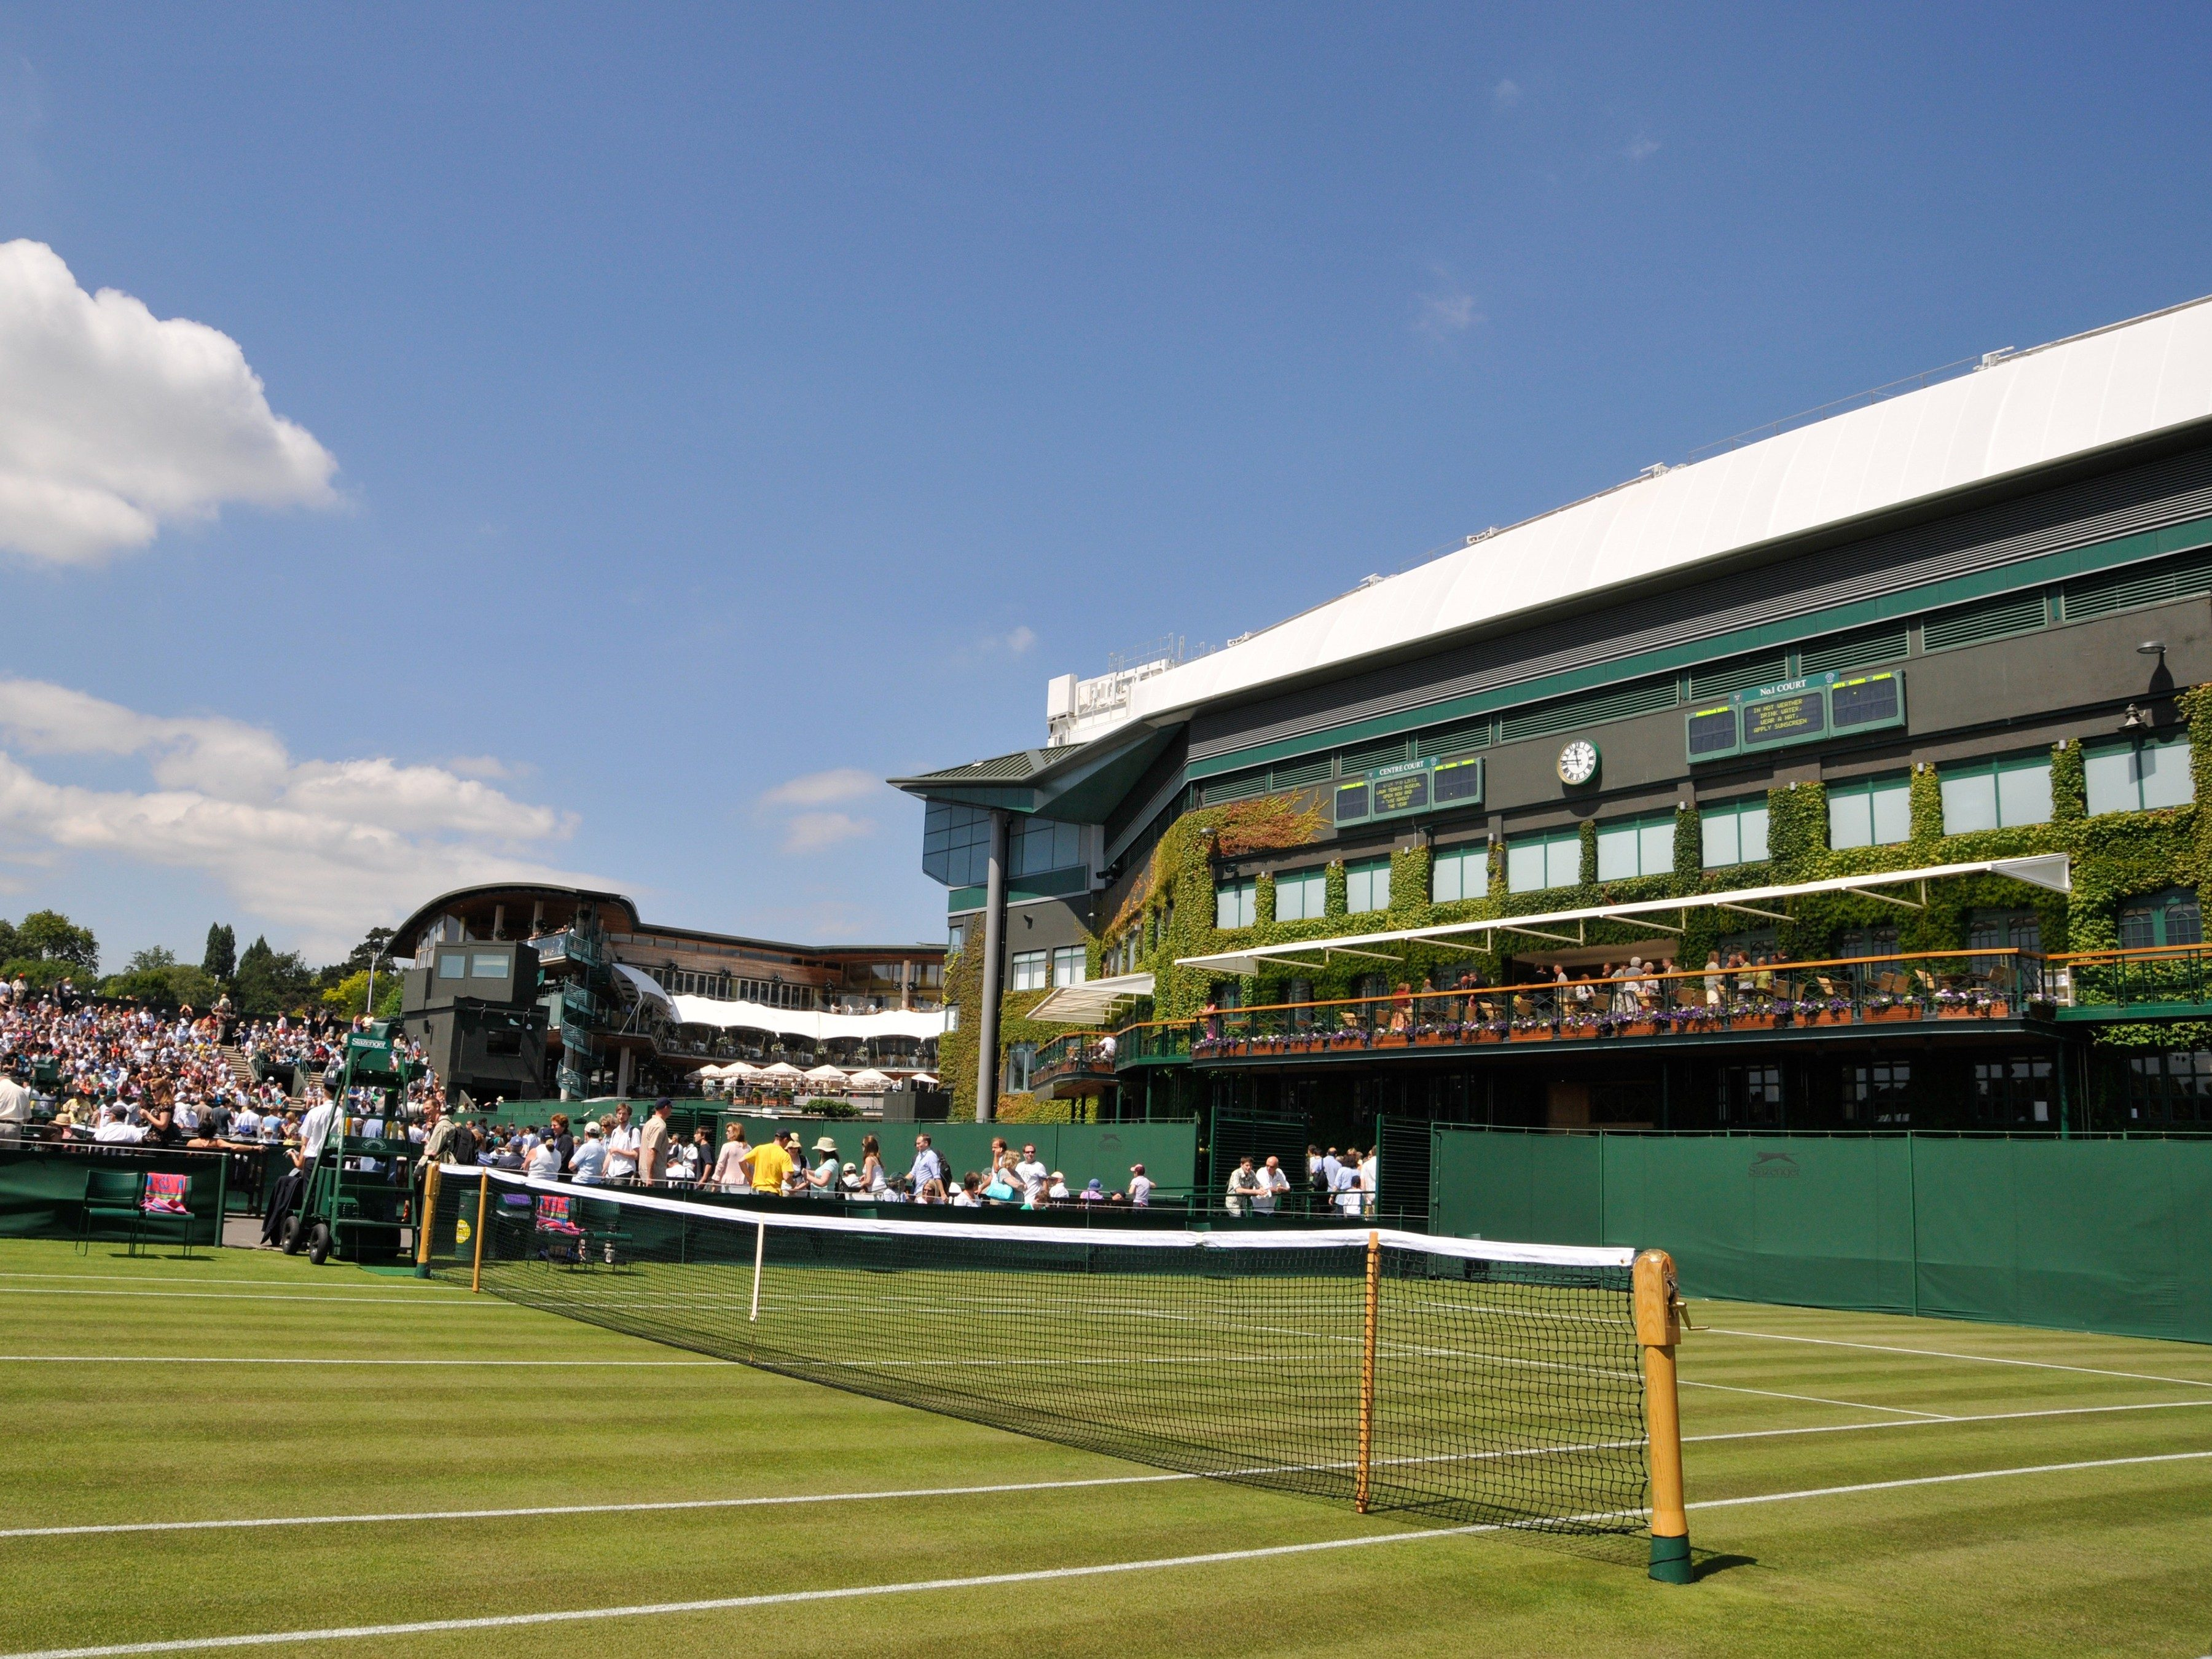 London attractions: Wimbledon Lawn Tennis Museum and Tour